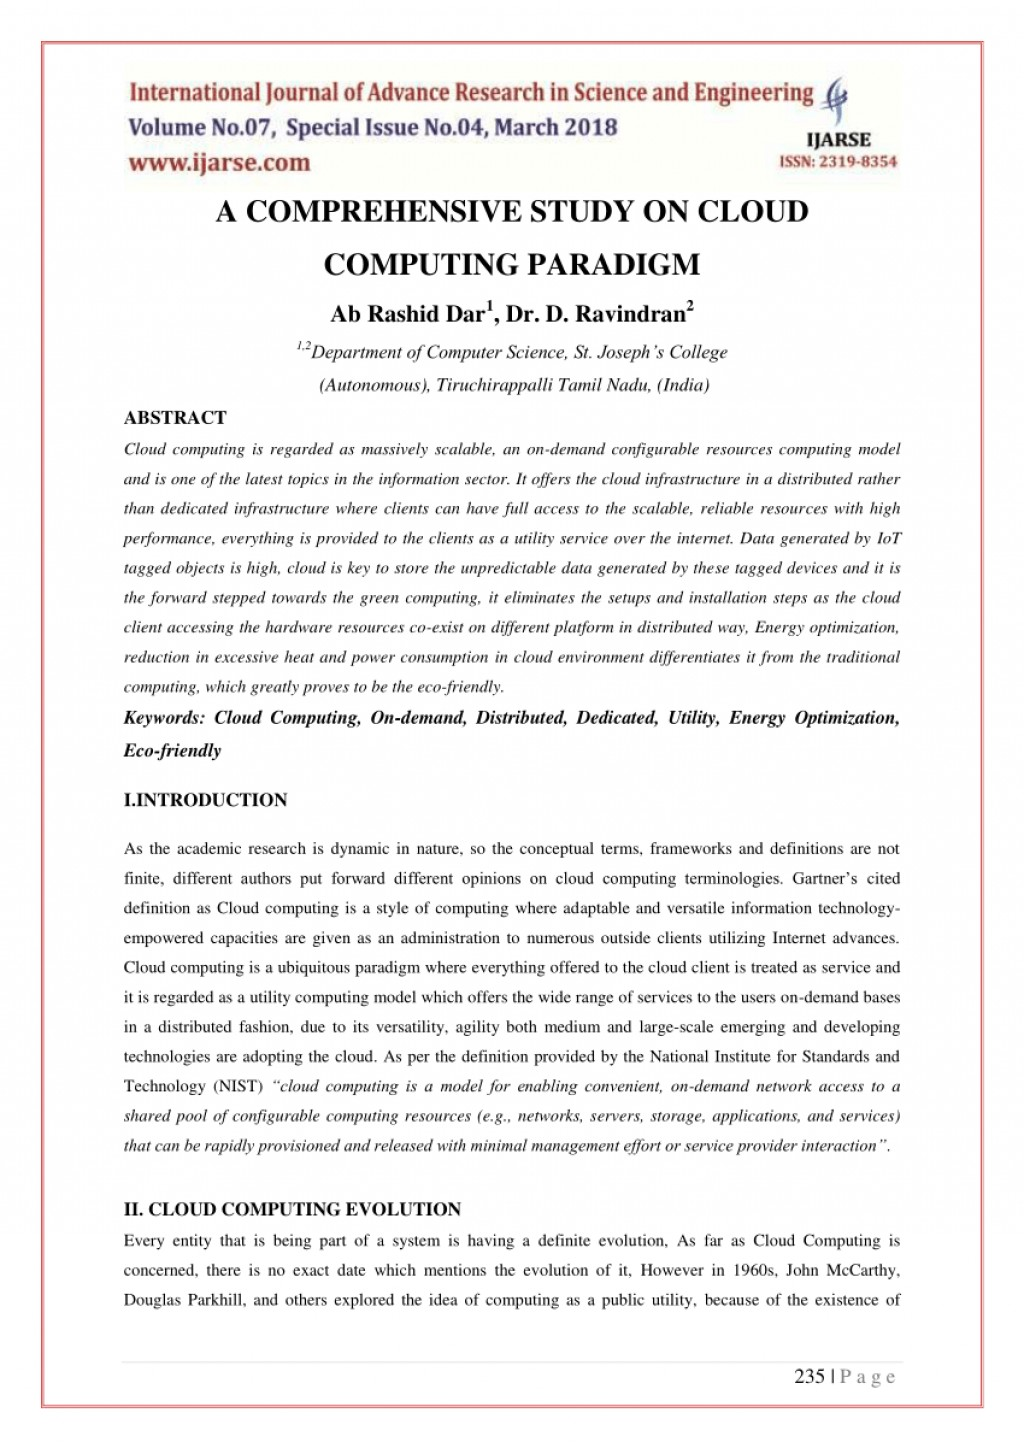 002 Largepreview Cloud Computing Research Paper Astounding 2018 Pdf Large